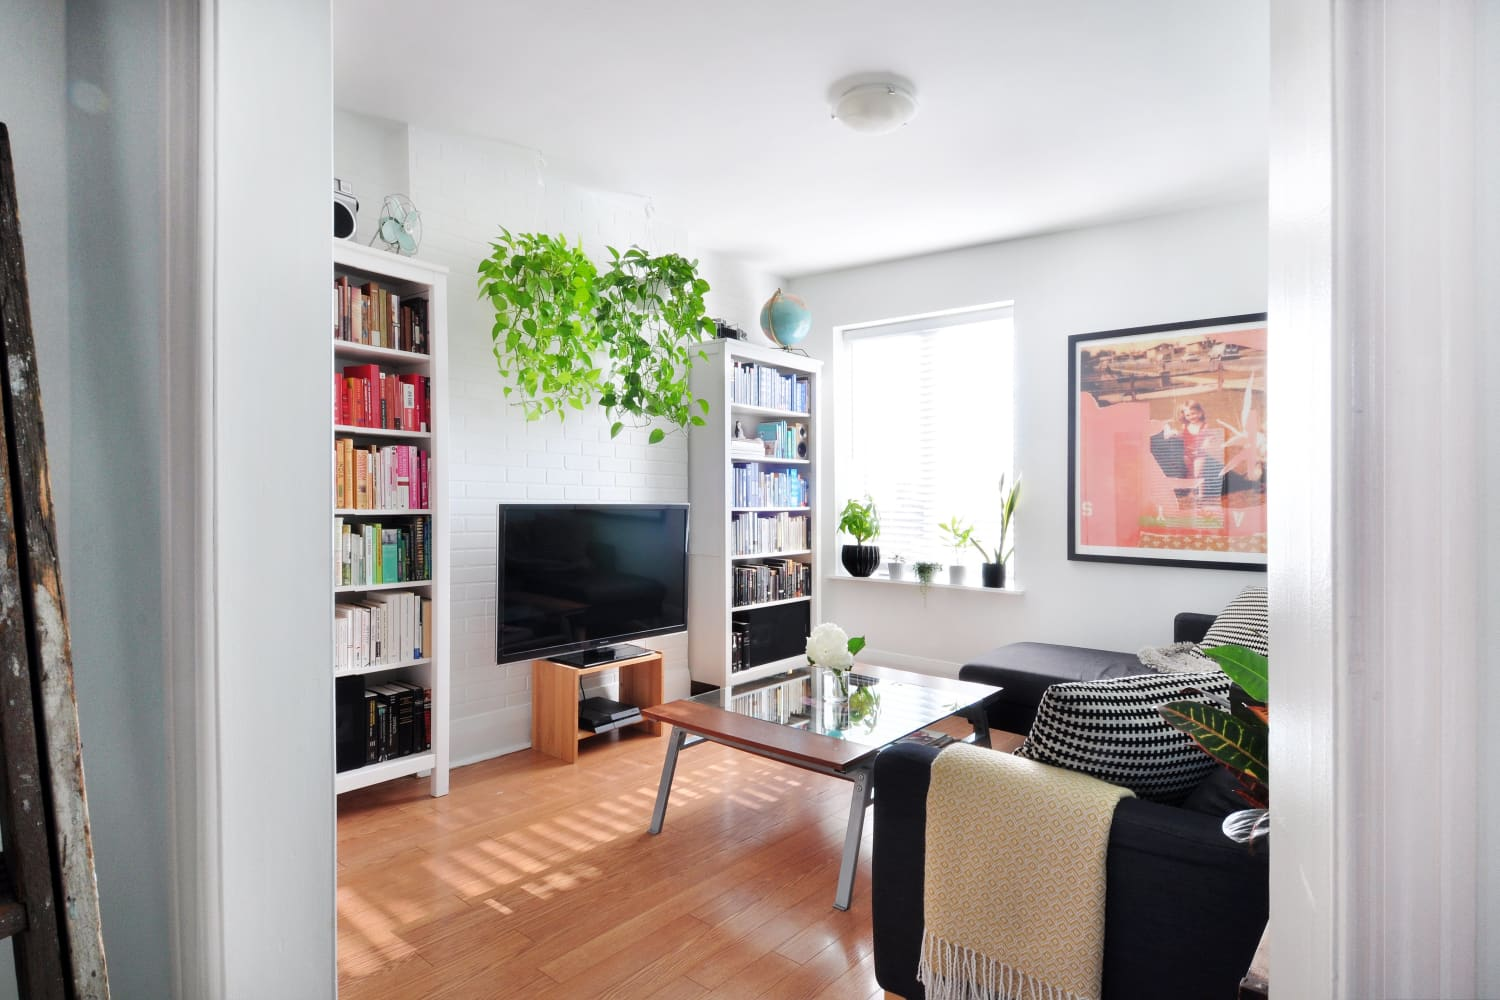 8 Guiding Principles that Tidy, Clutter-Free People Swear By